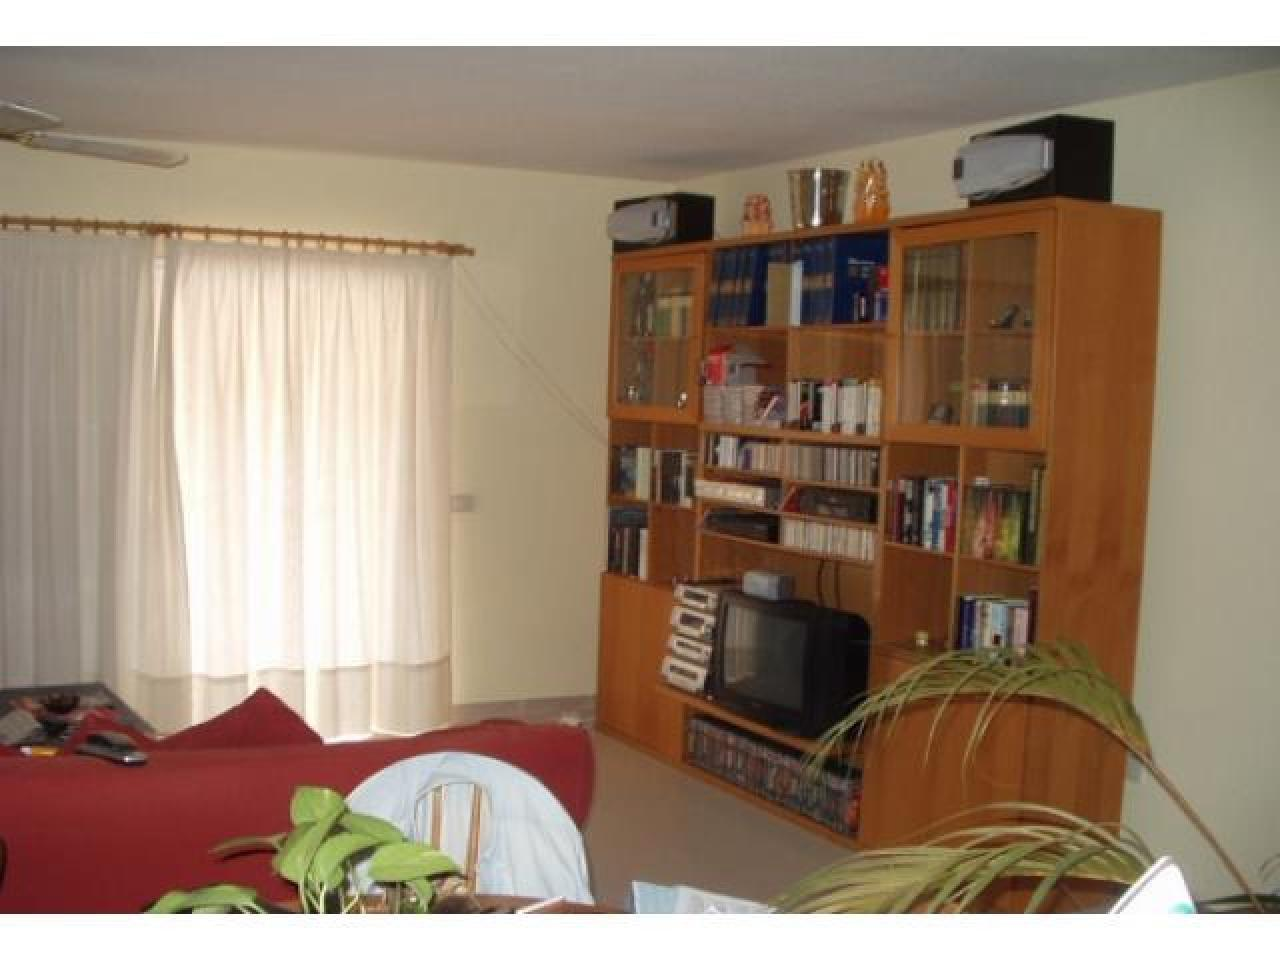 Real estate in Tenerife for sale » #369 - 3